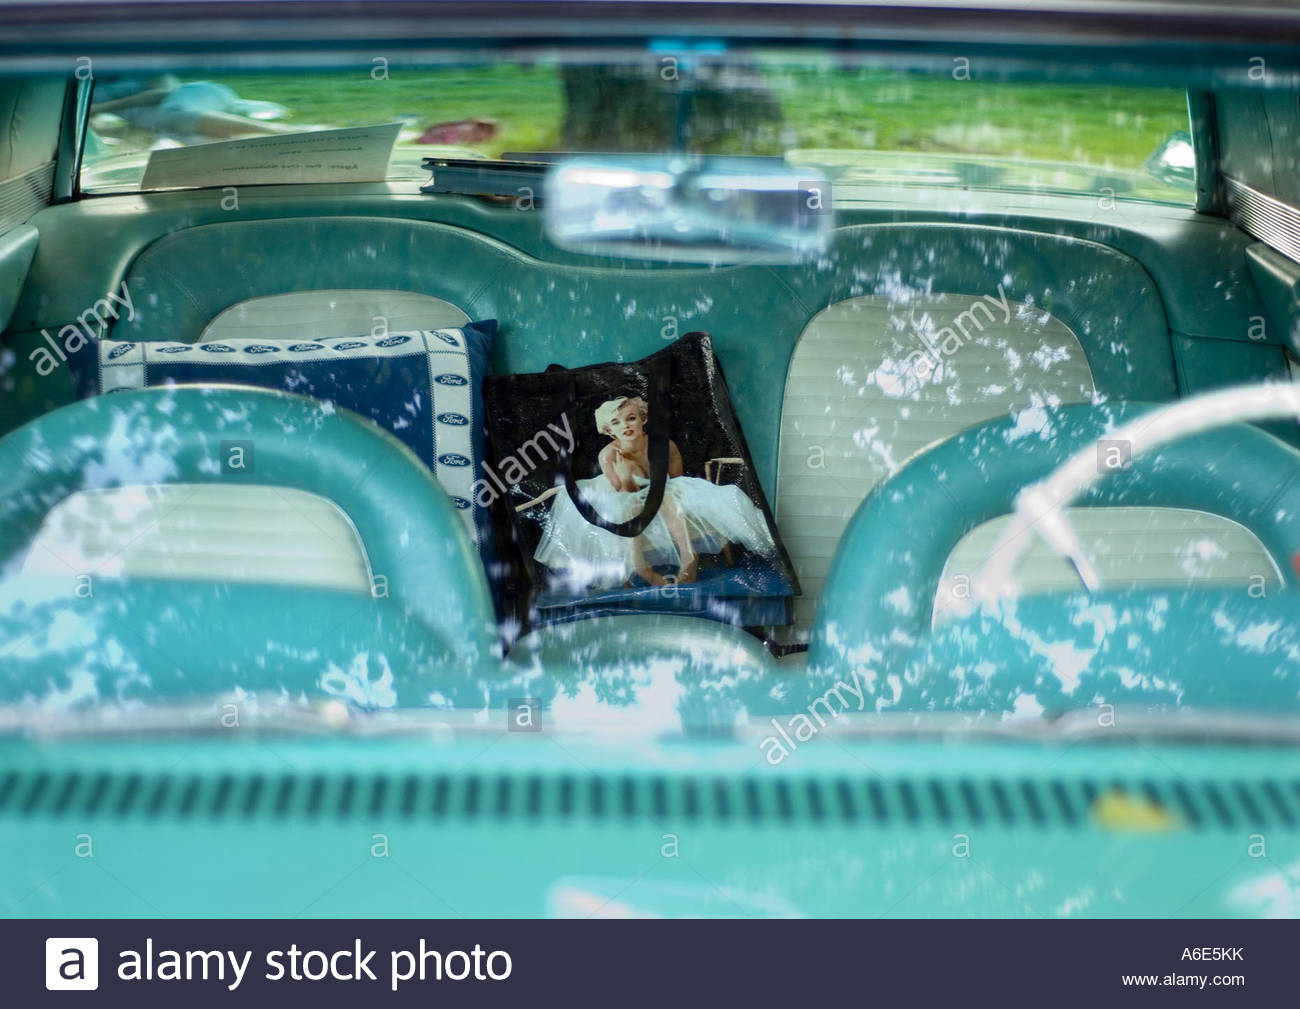 Picture of Marilyn Monroe printed on a bag on the back seat of a car, USA - Stock Image